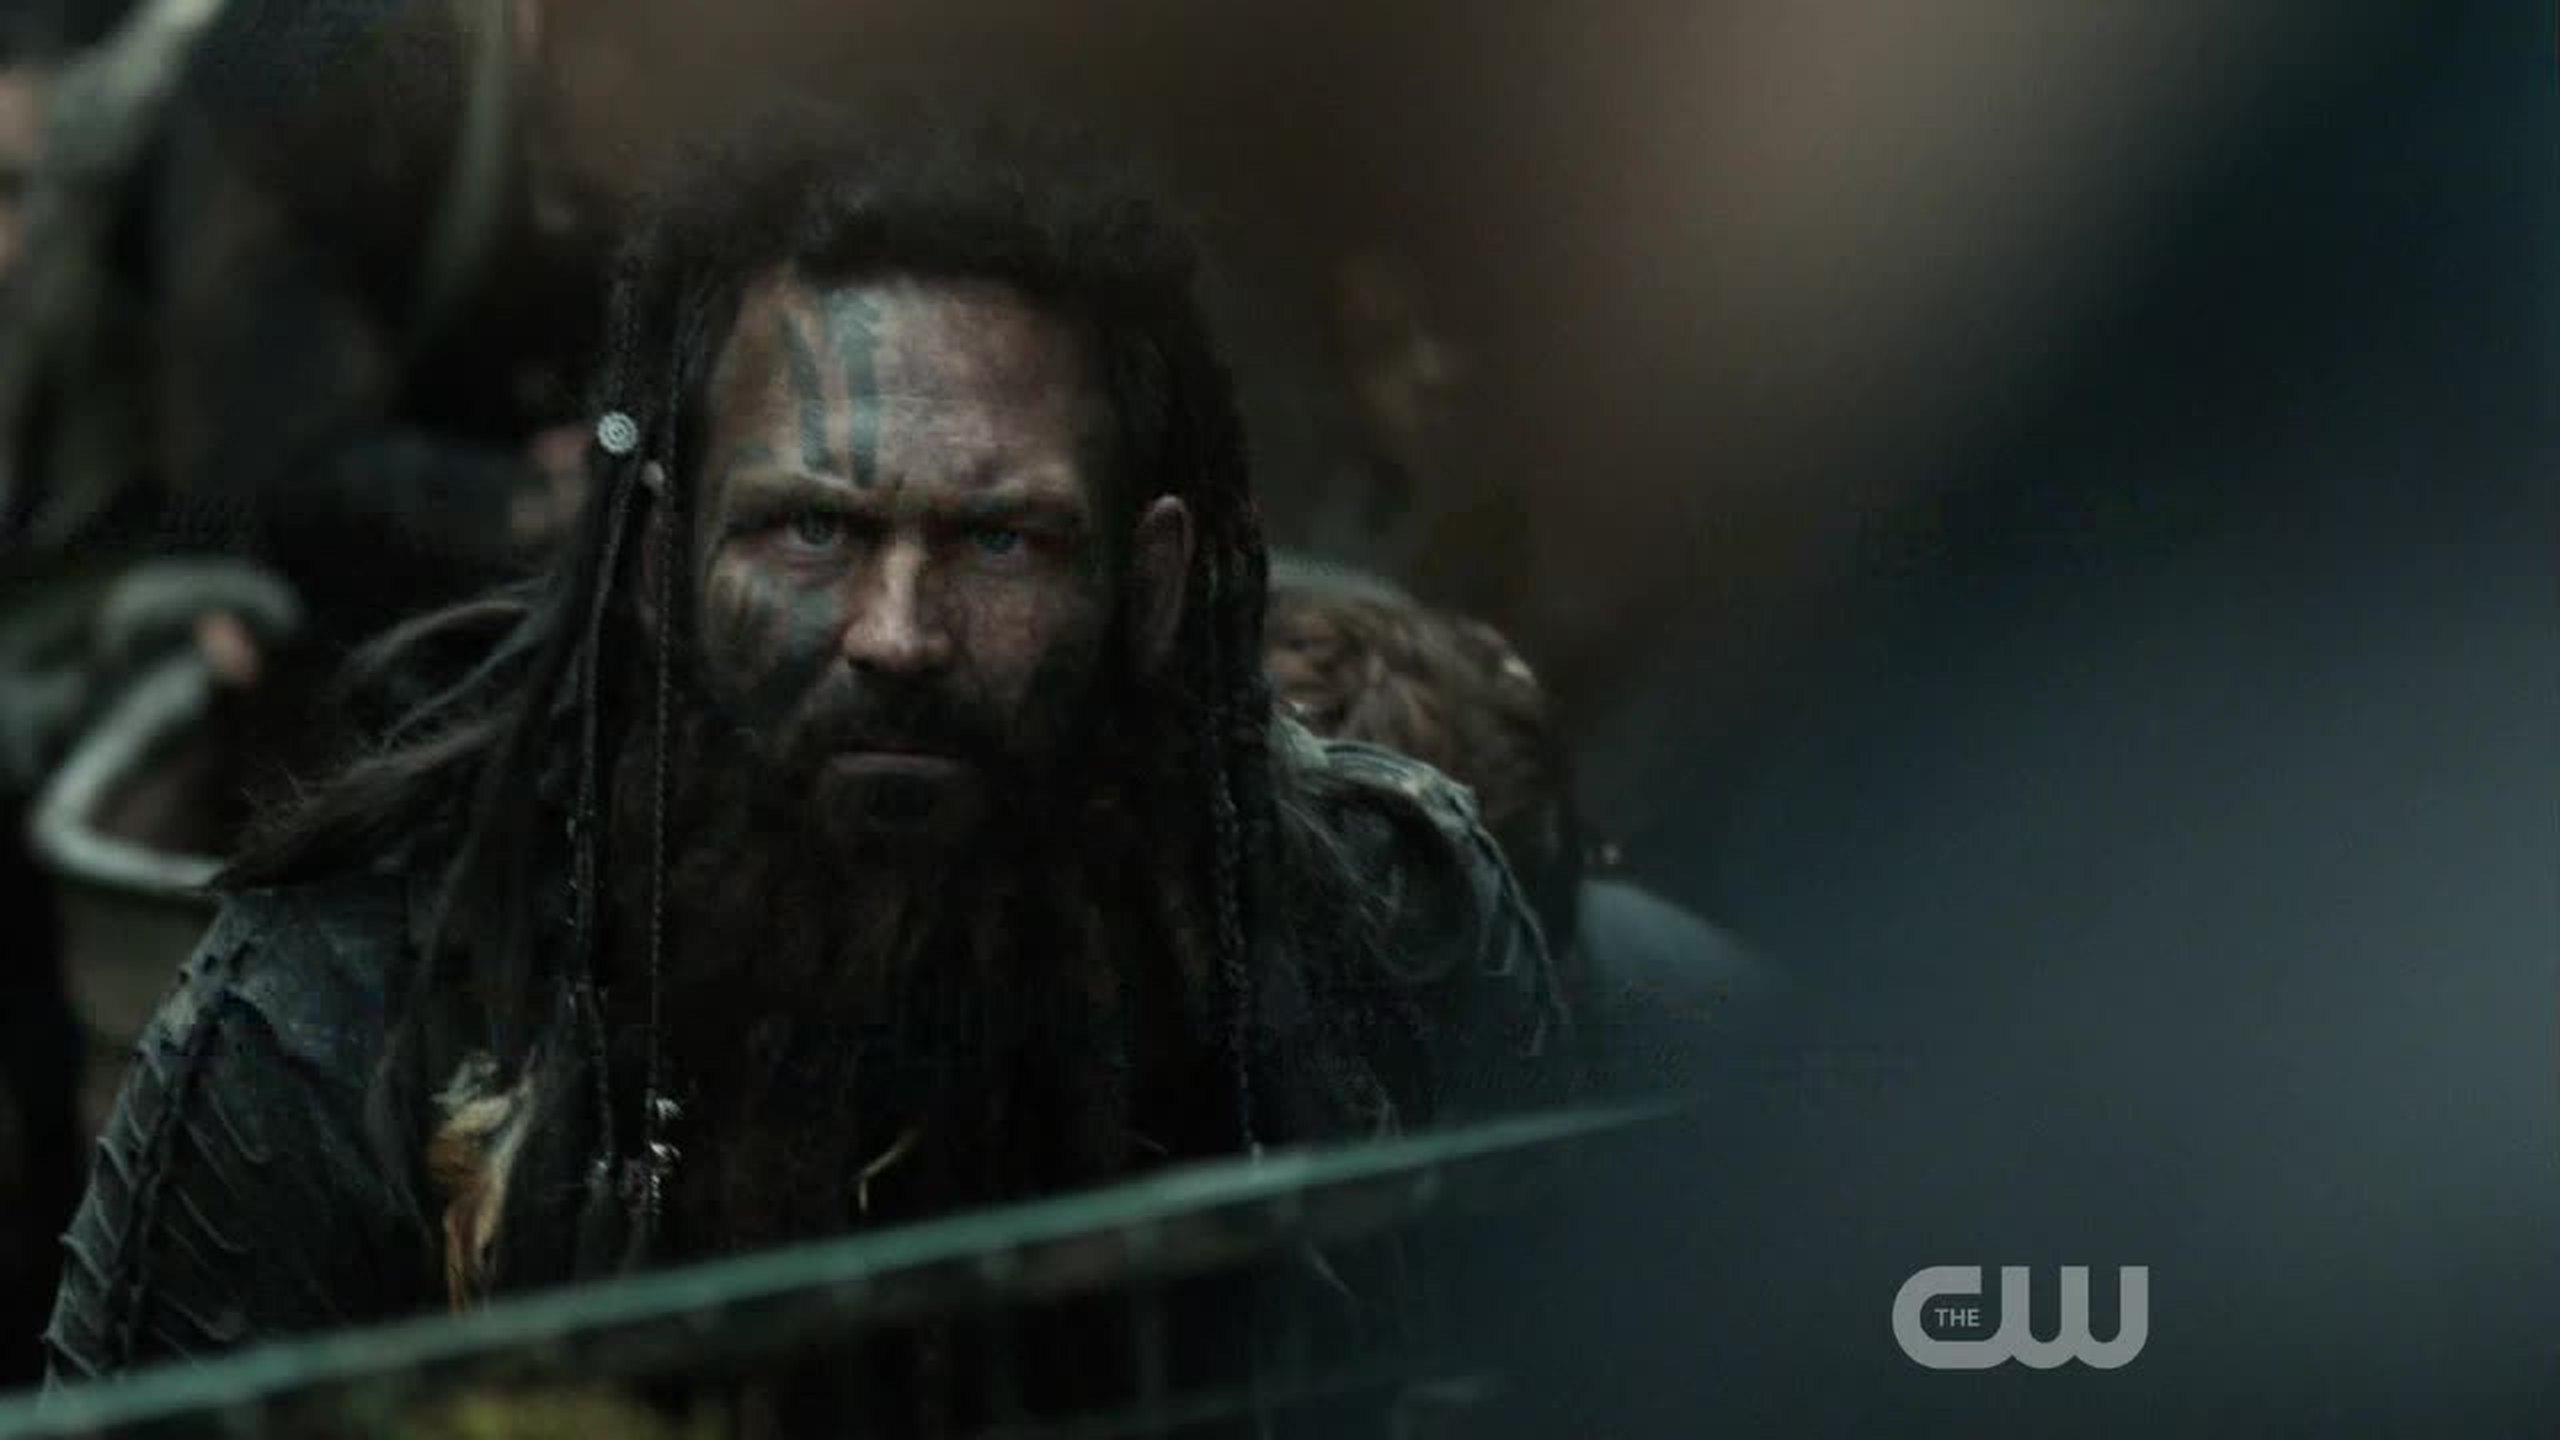 I like him. He's smart, unlike the other grounders, and he tells them to stay quiet. He knows how to stay alive.